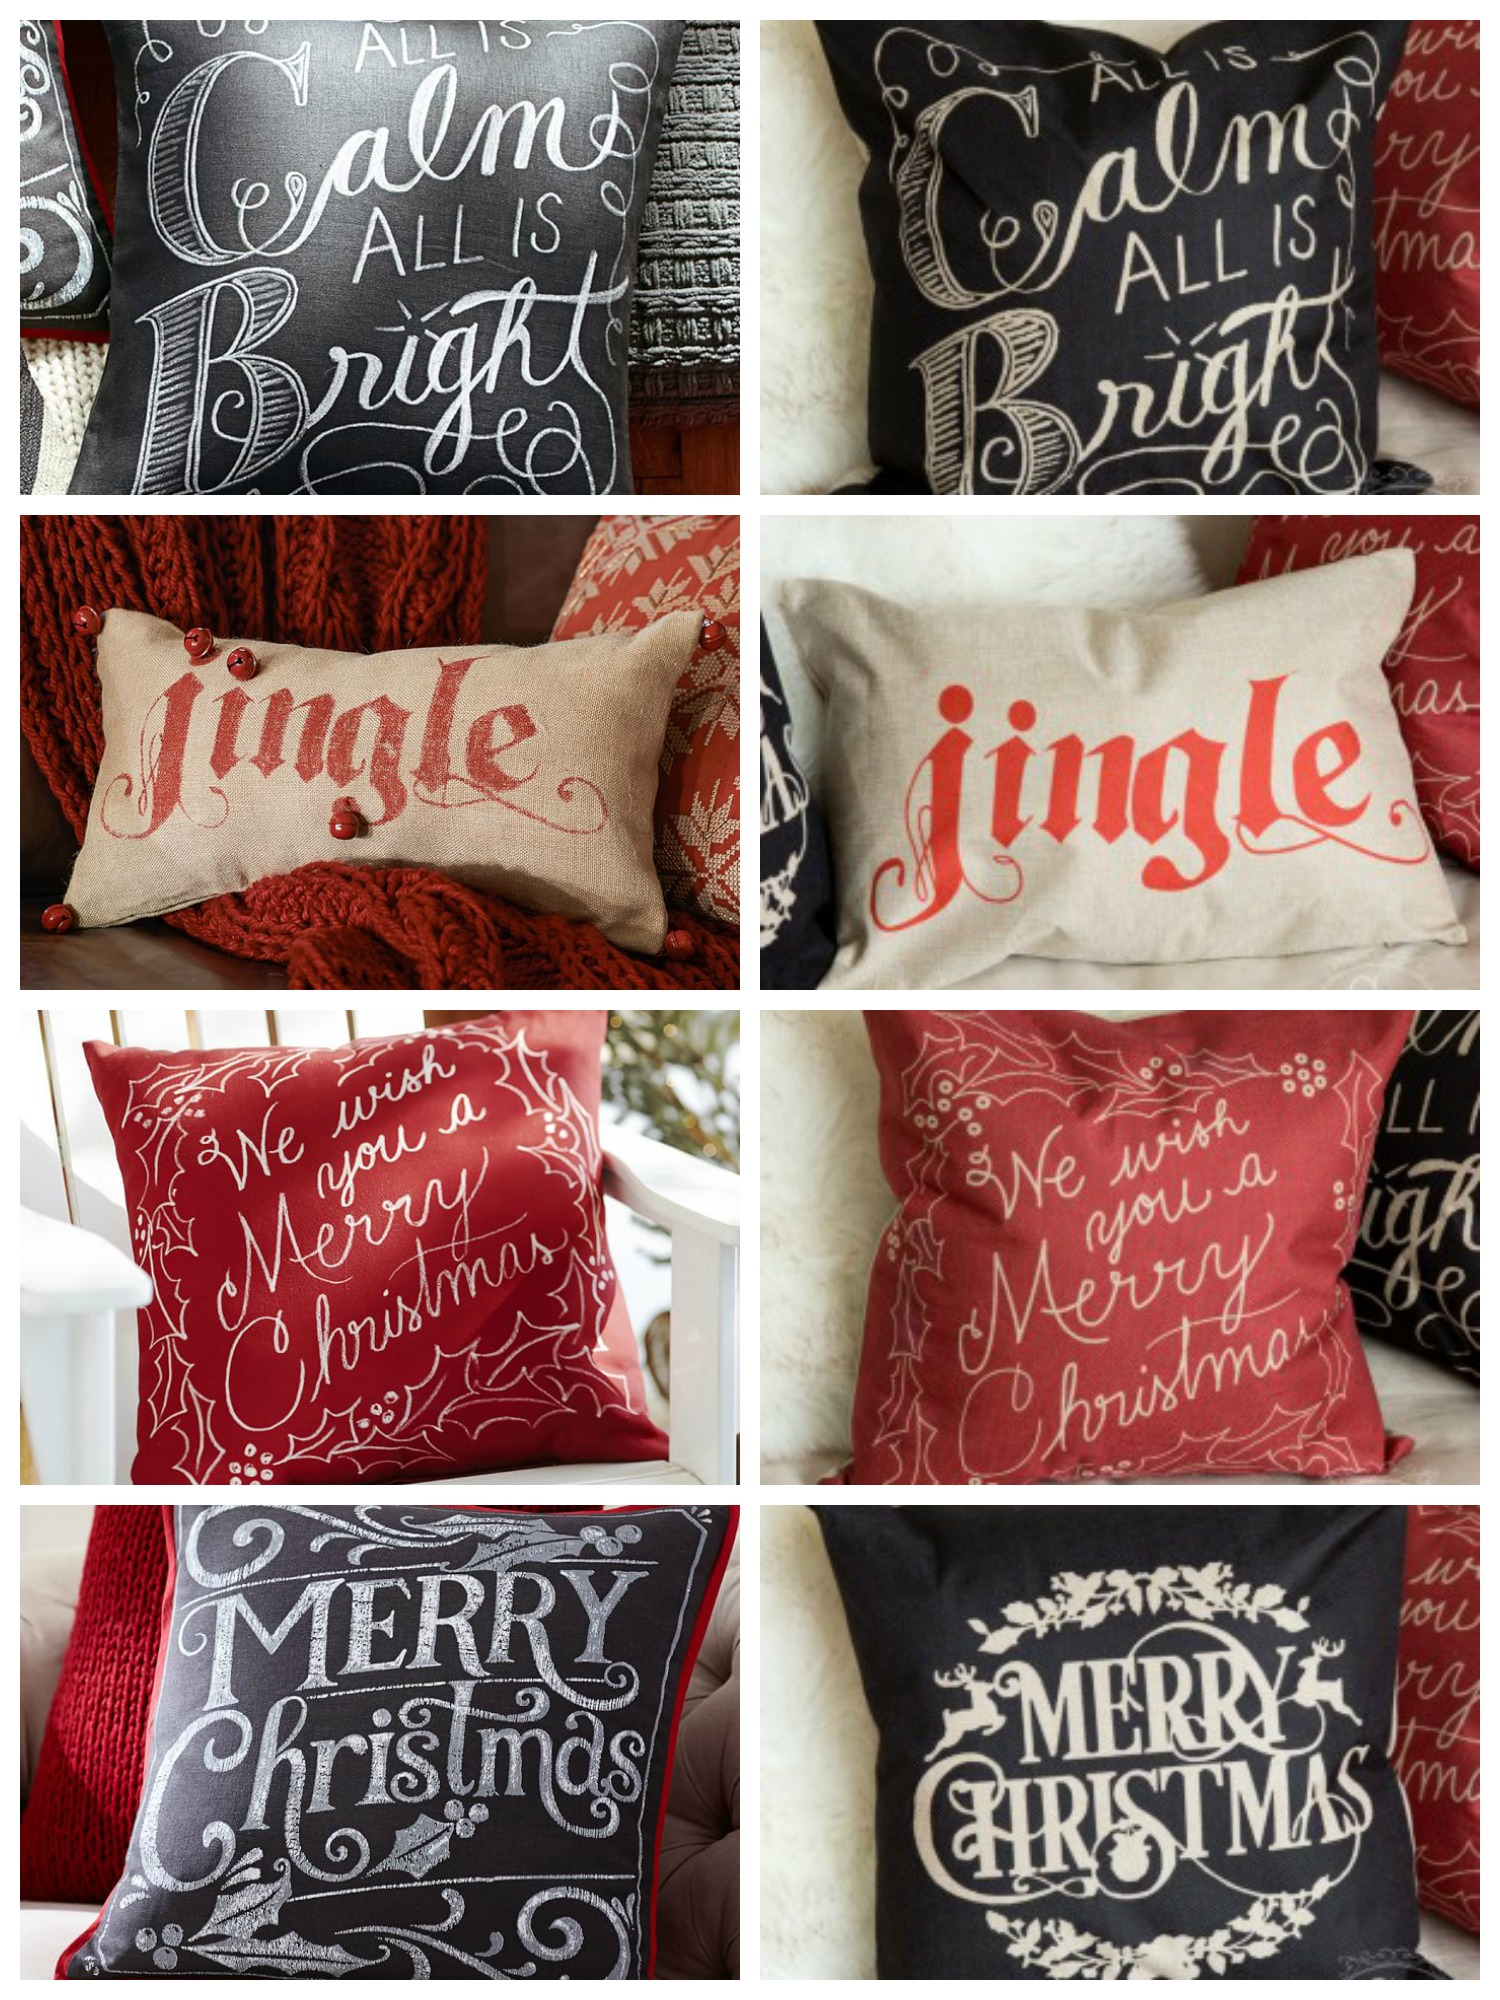 pottery barn christmas pillows Pottery Barn Holiday Pillows | Decor Look Alikes pottery barn christmas pillows